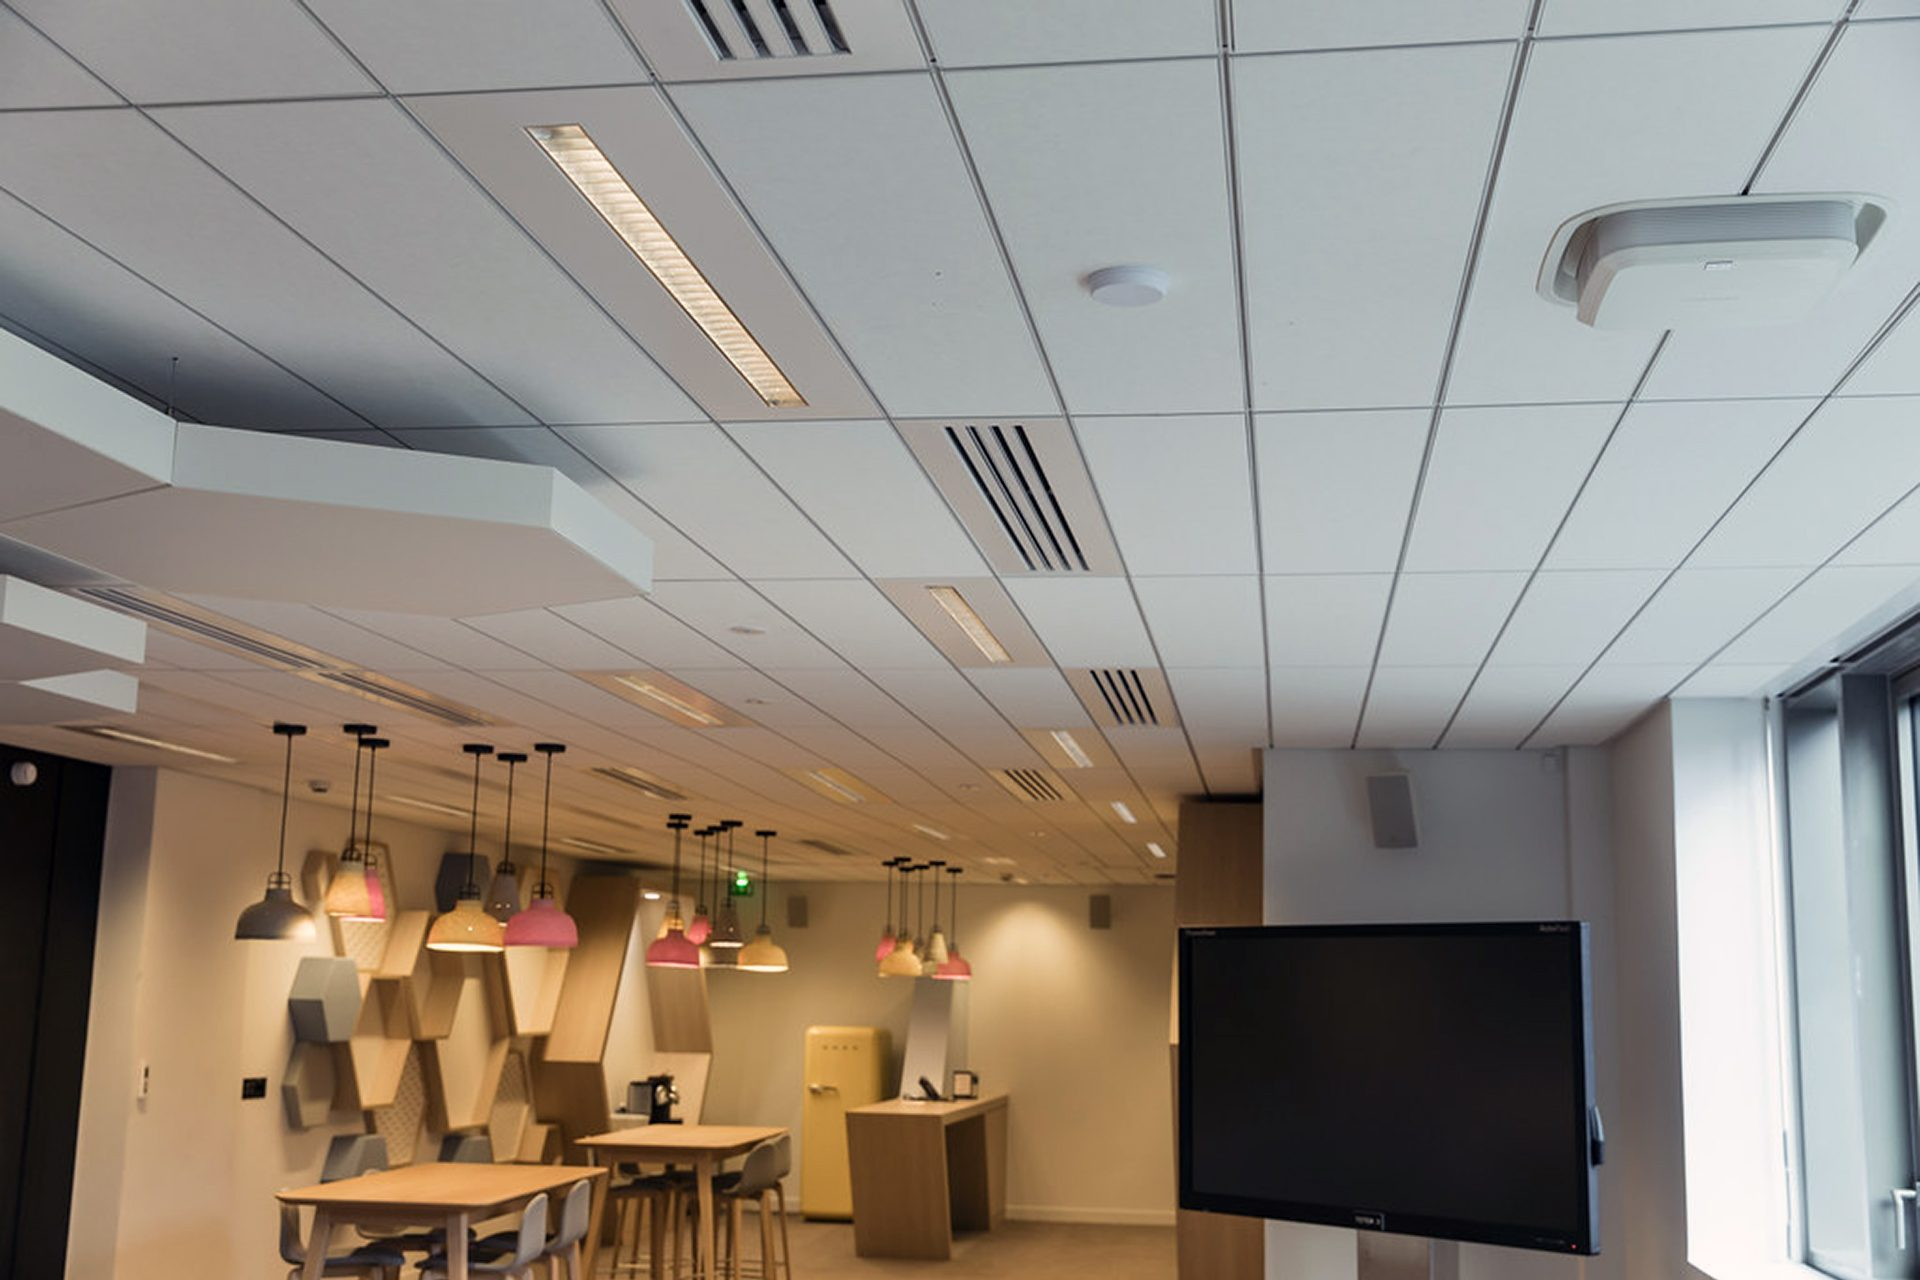 Above illustration show the same antenna (Commscope UAP) ceiling mounted once again providing WiFi and cellular signal.